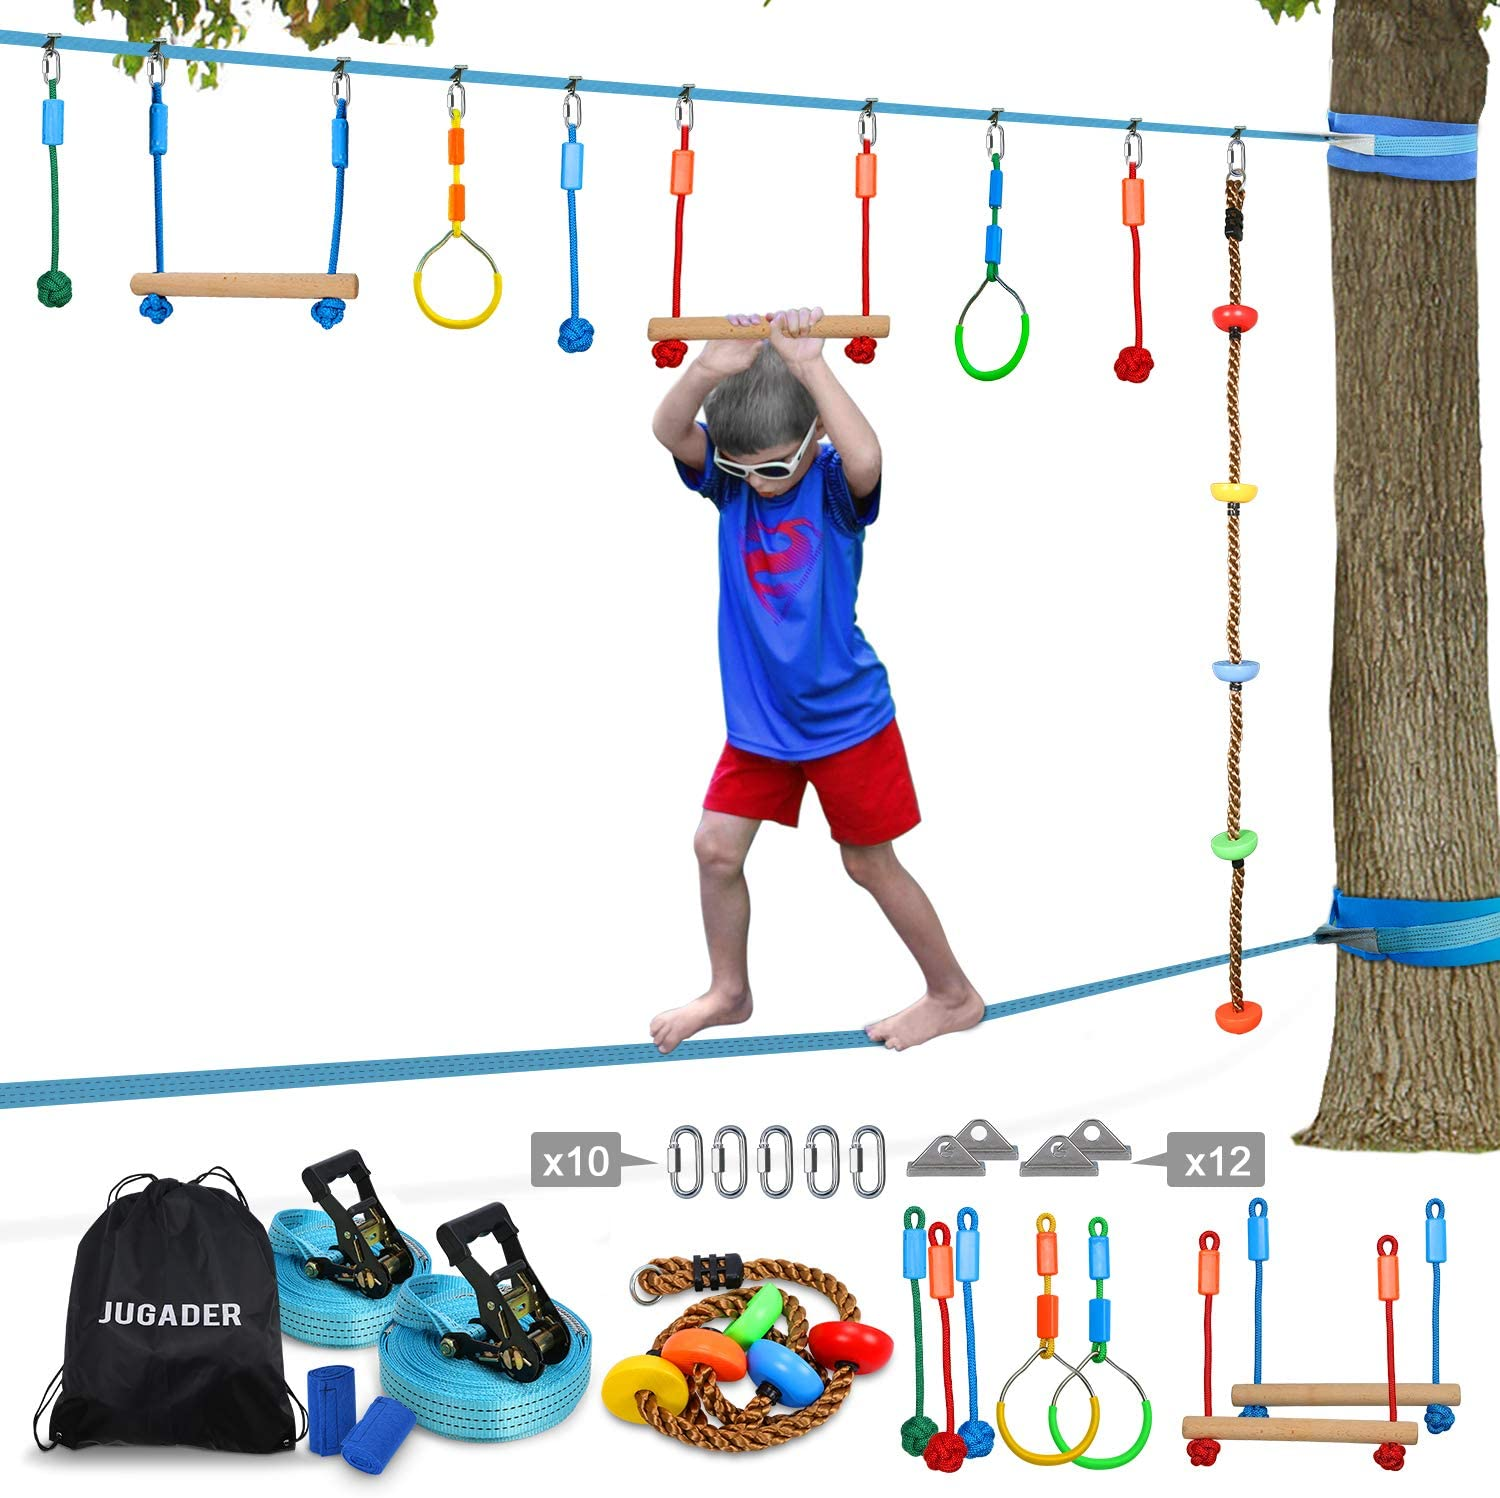 Jugader Ninja Line Slackline, Upgraded Ninja Warrior Training Equipment for Kids with Slackline Kits, Obstacle Course for Home for Backyard, Safer ...